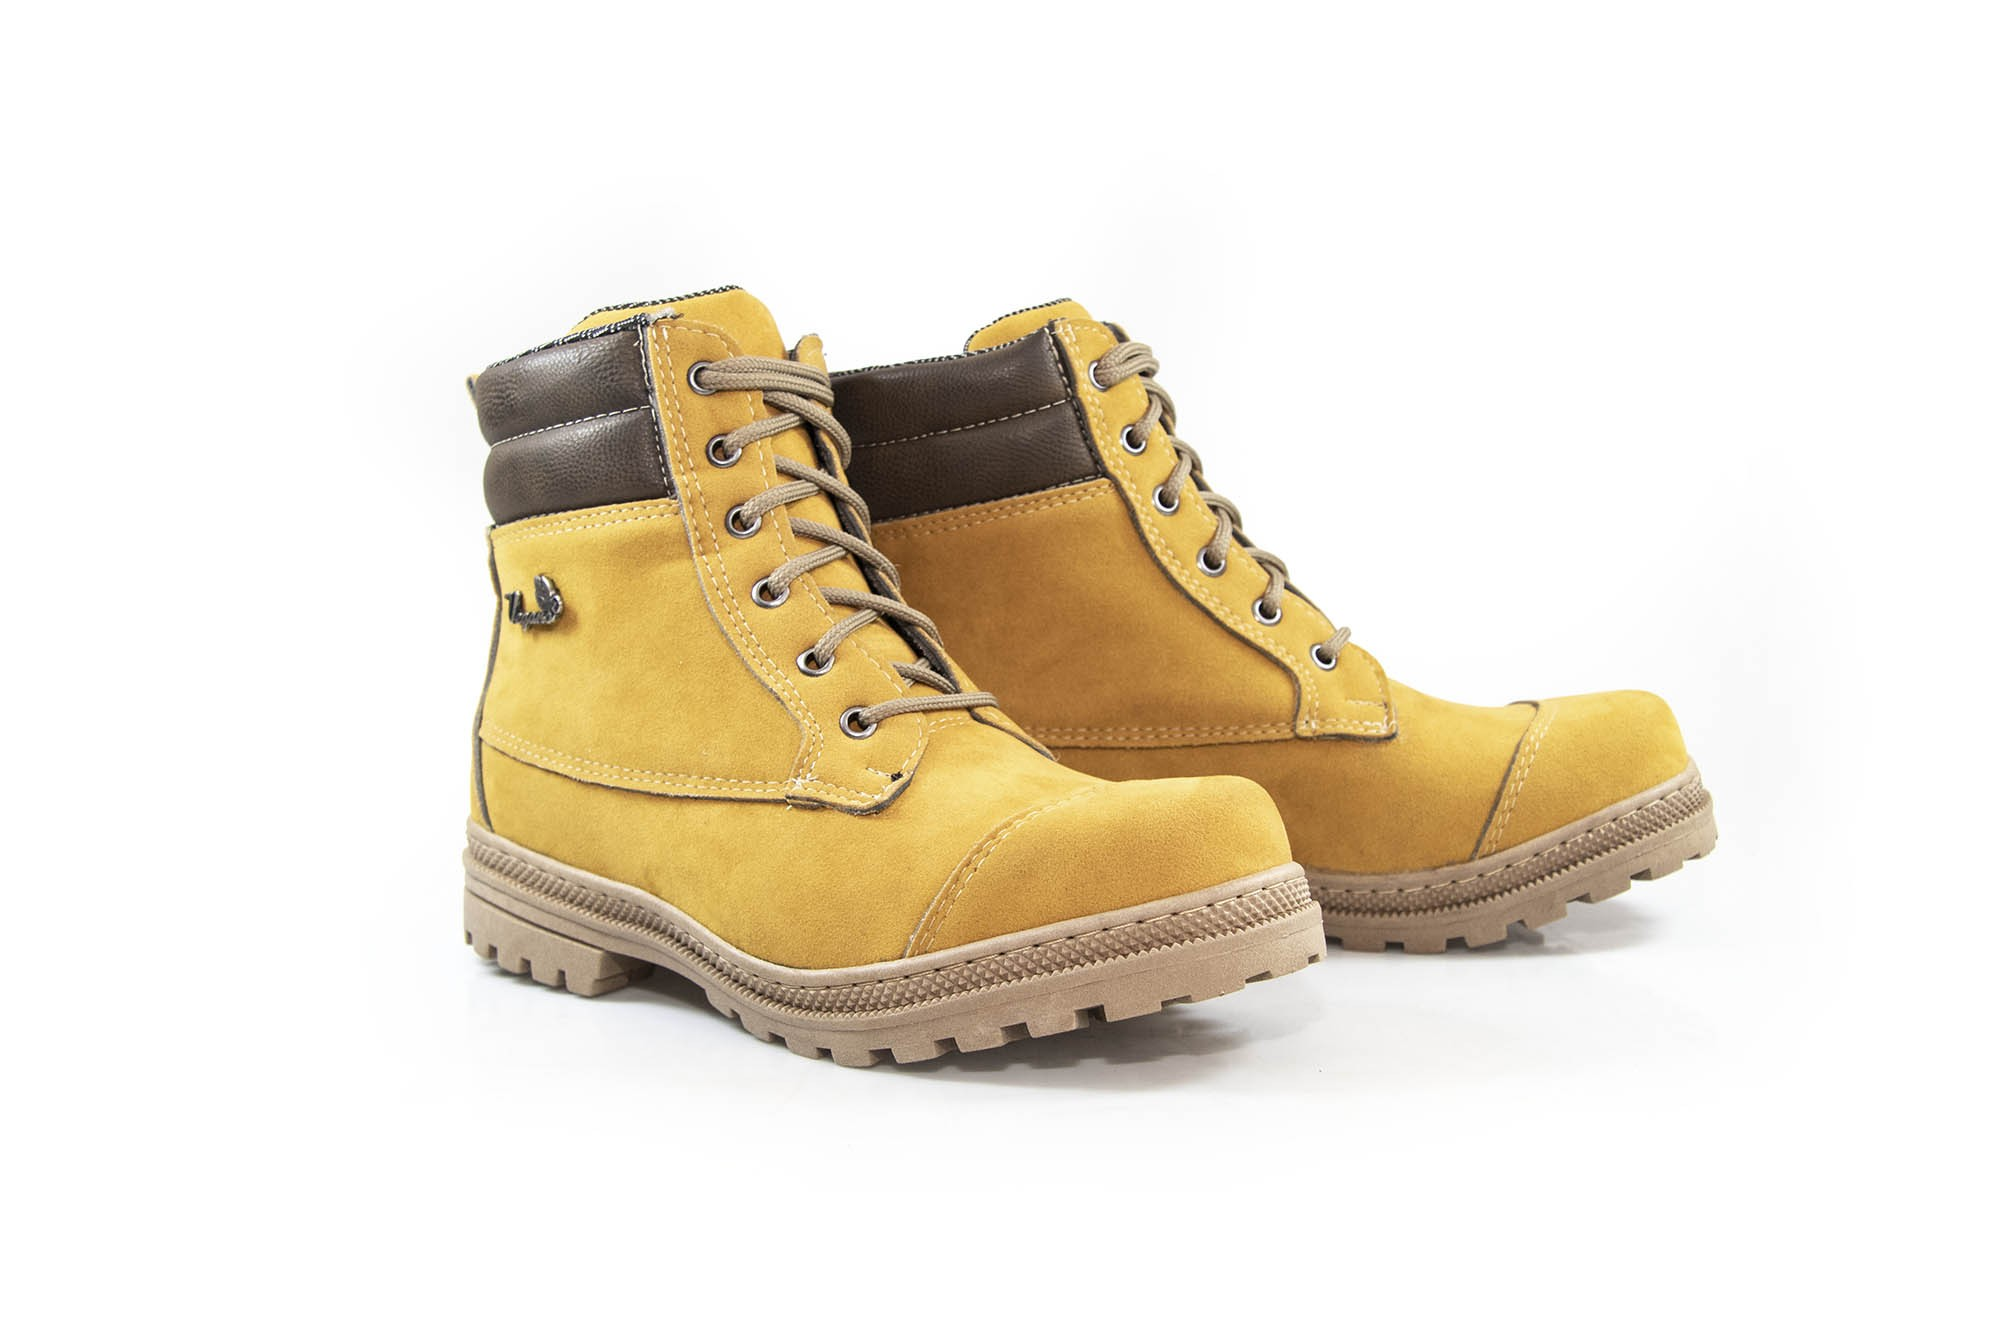 Bota Vegano Shoes Naturale Soft Amarelo (Yellow boot)